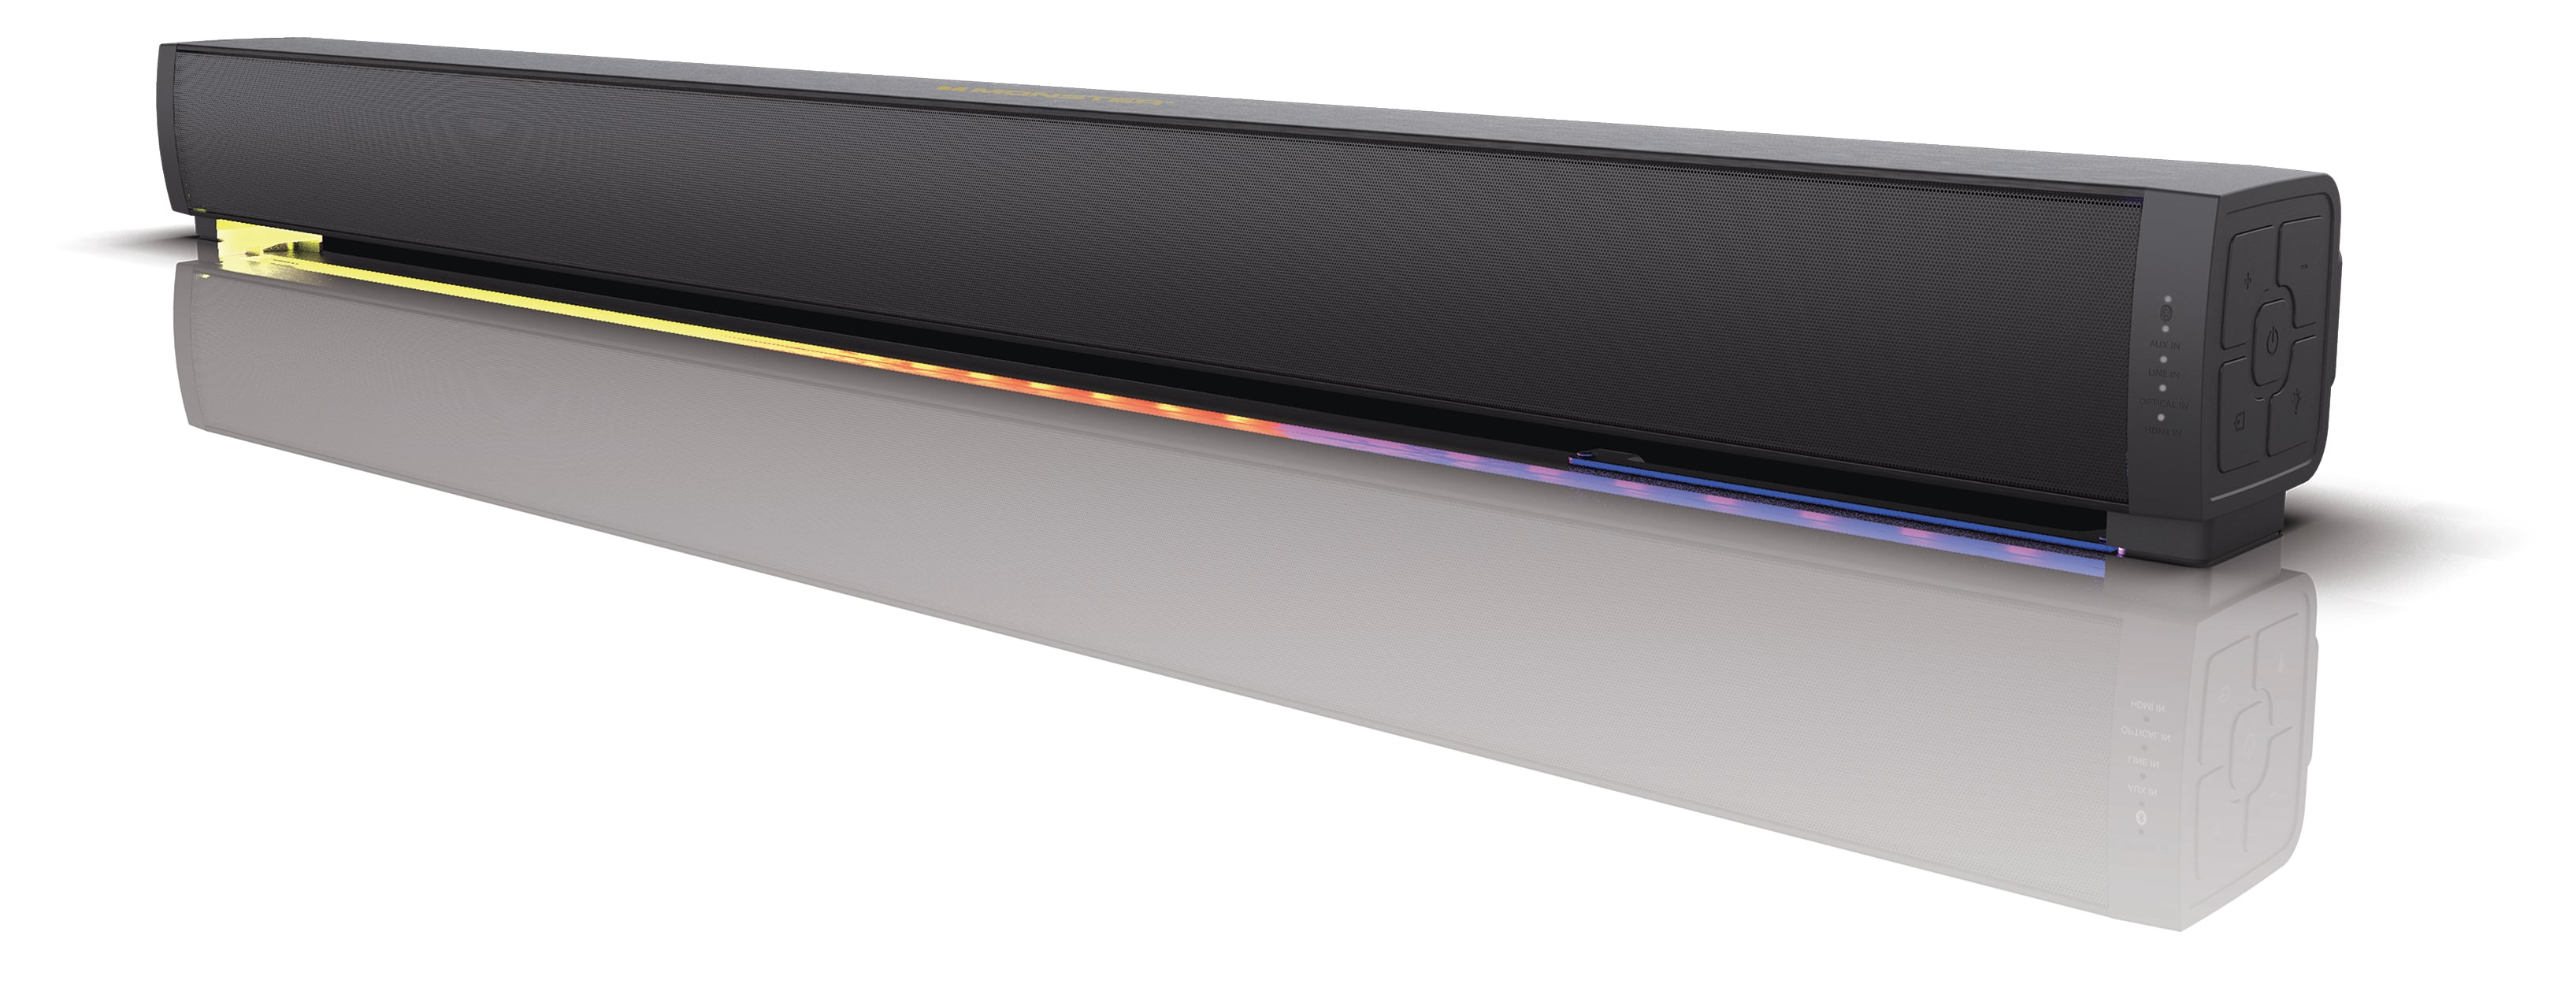 "Monster 37"" TV Soundbar, with Bluetooth/LED/Lights - Reg $129, Clearance price $19 - YMMV"